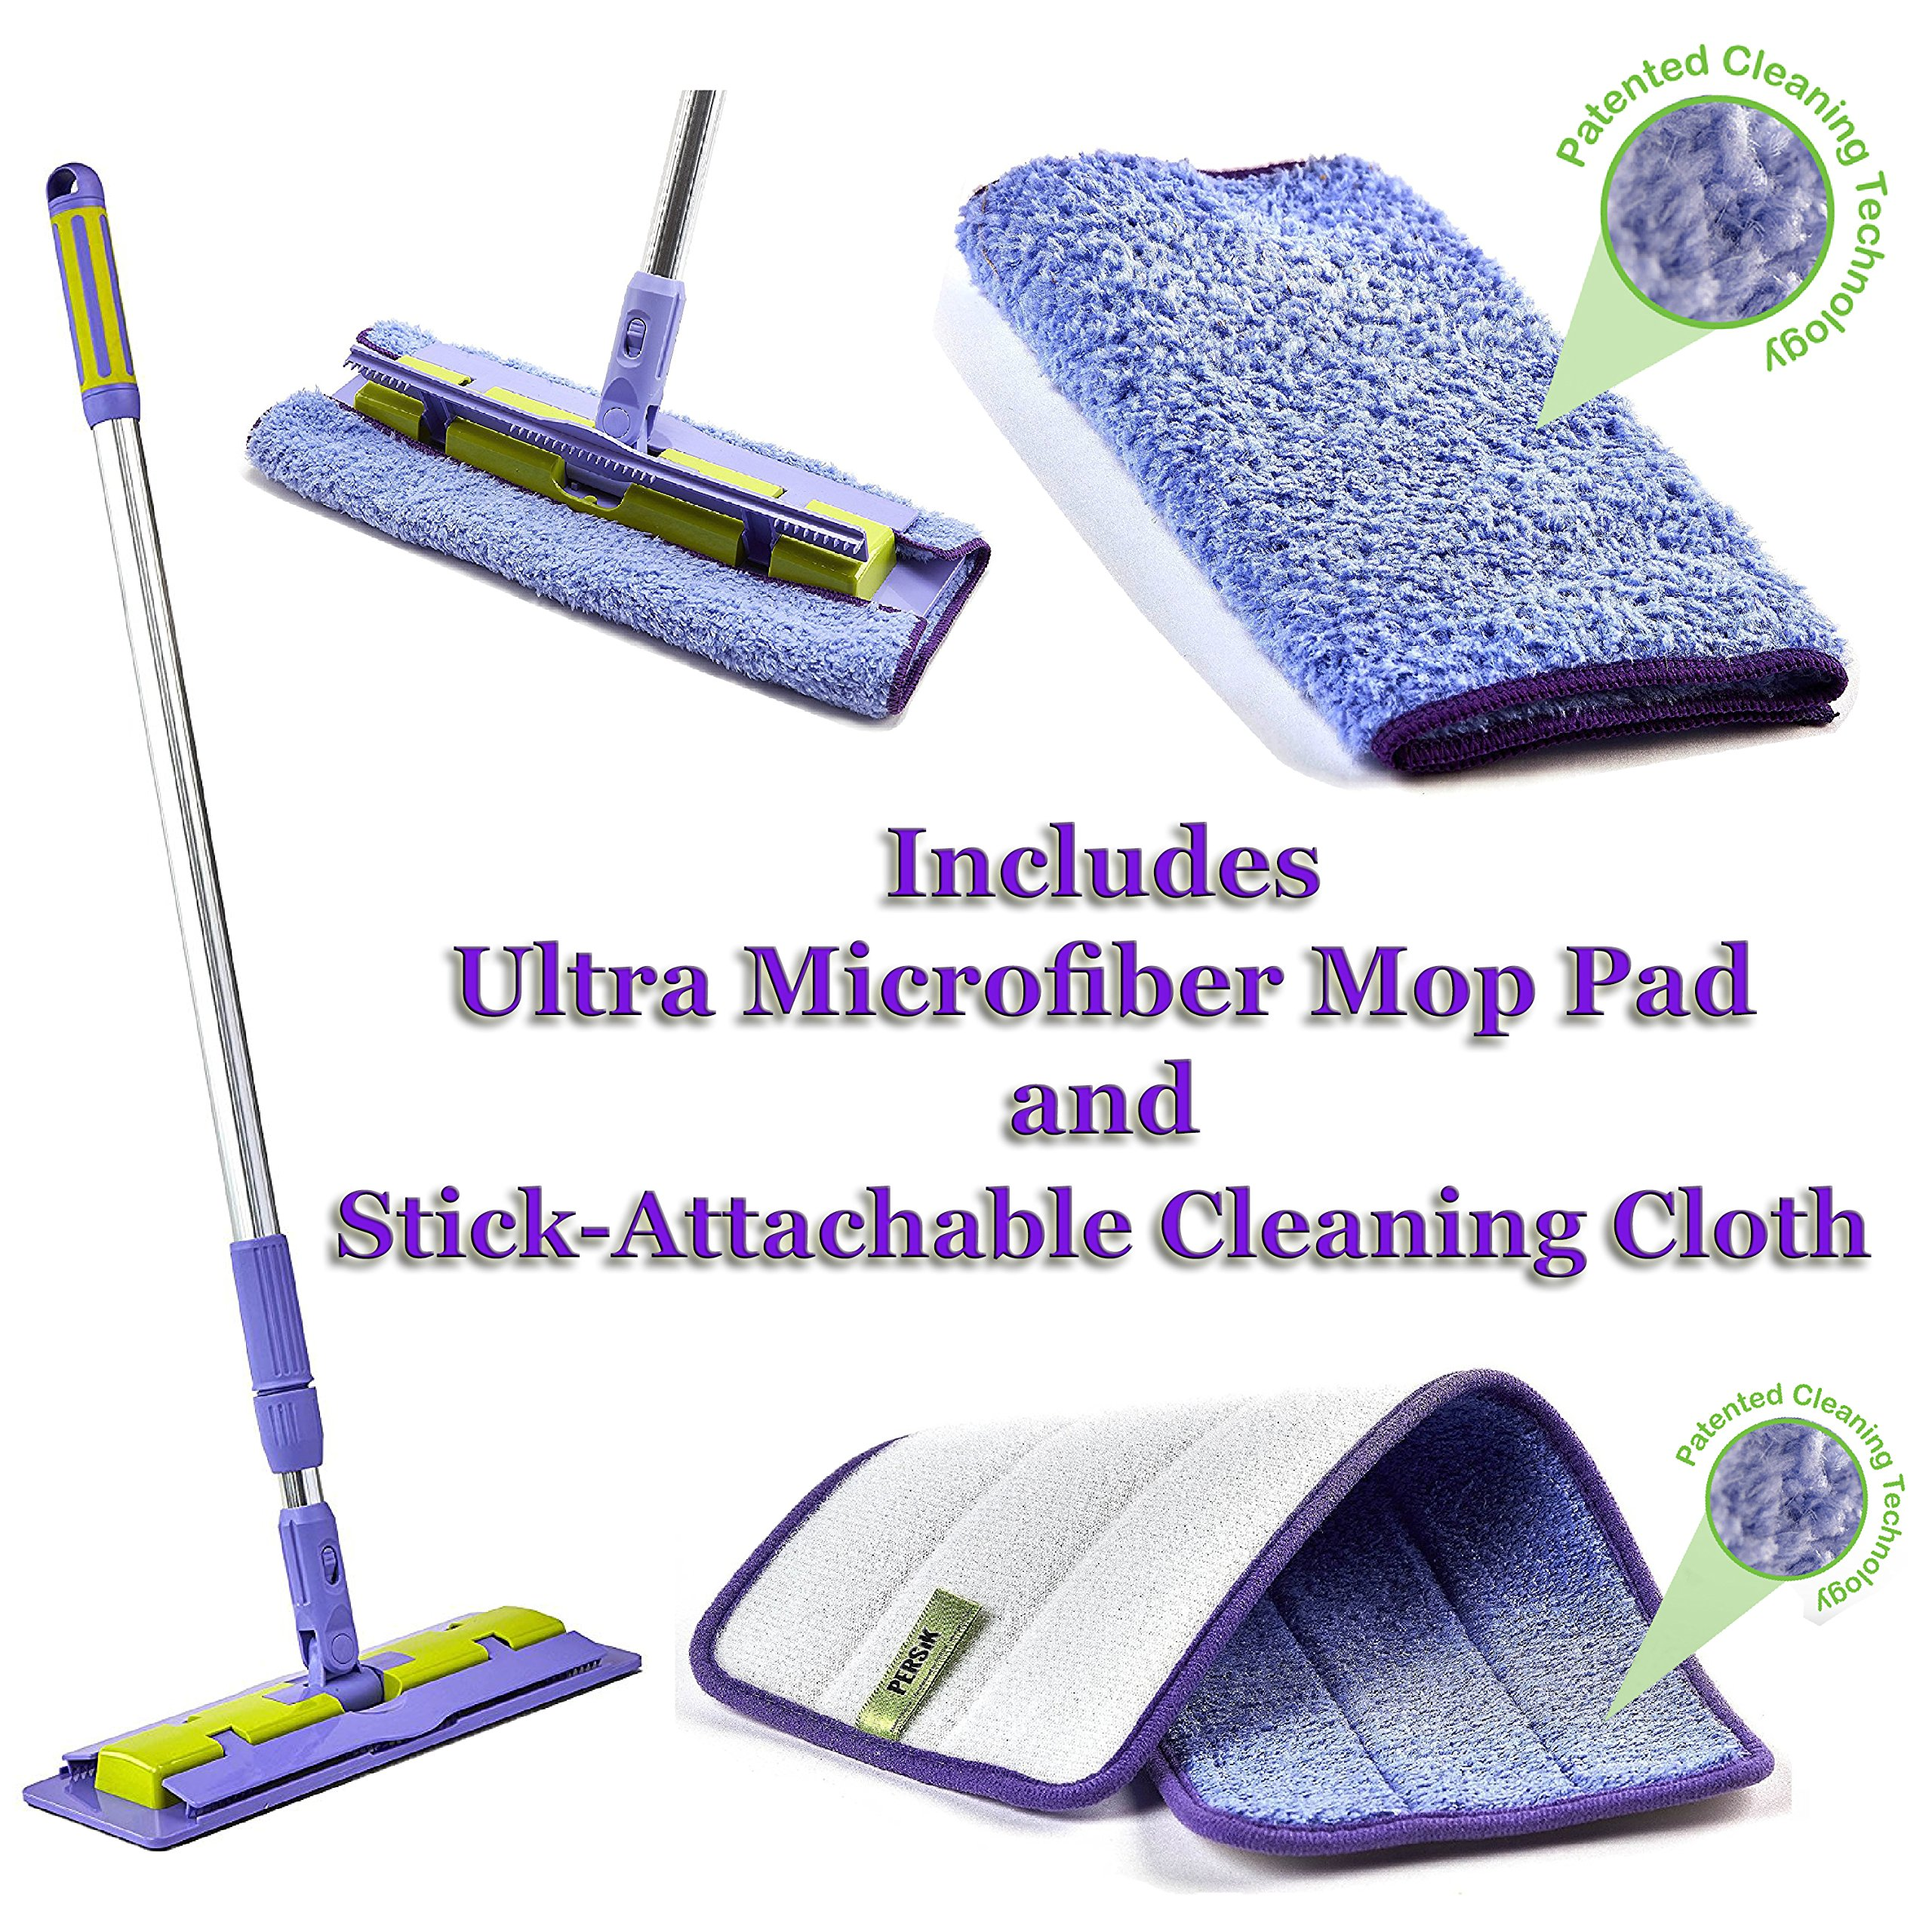 Pure-Sky Magic Deep Clean Floor Mop - JUST ADD Water No Detergents Needed - Ultra Microfiber Damp Mop Cleaner - Includes Telescopic Extension Pole - Light Weight, Strong Durable + Mop Pad and Towel